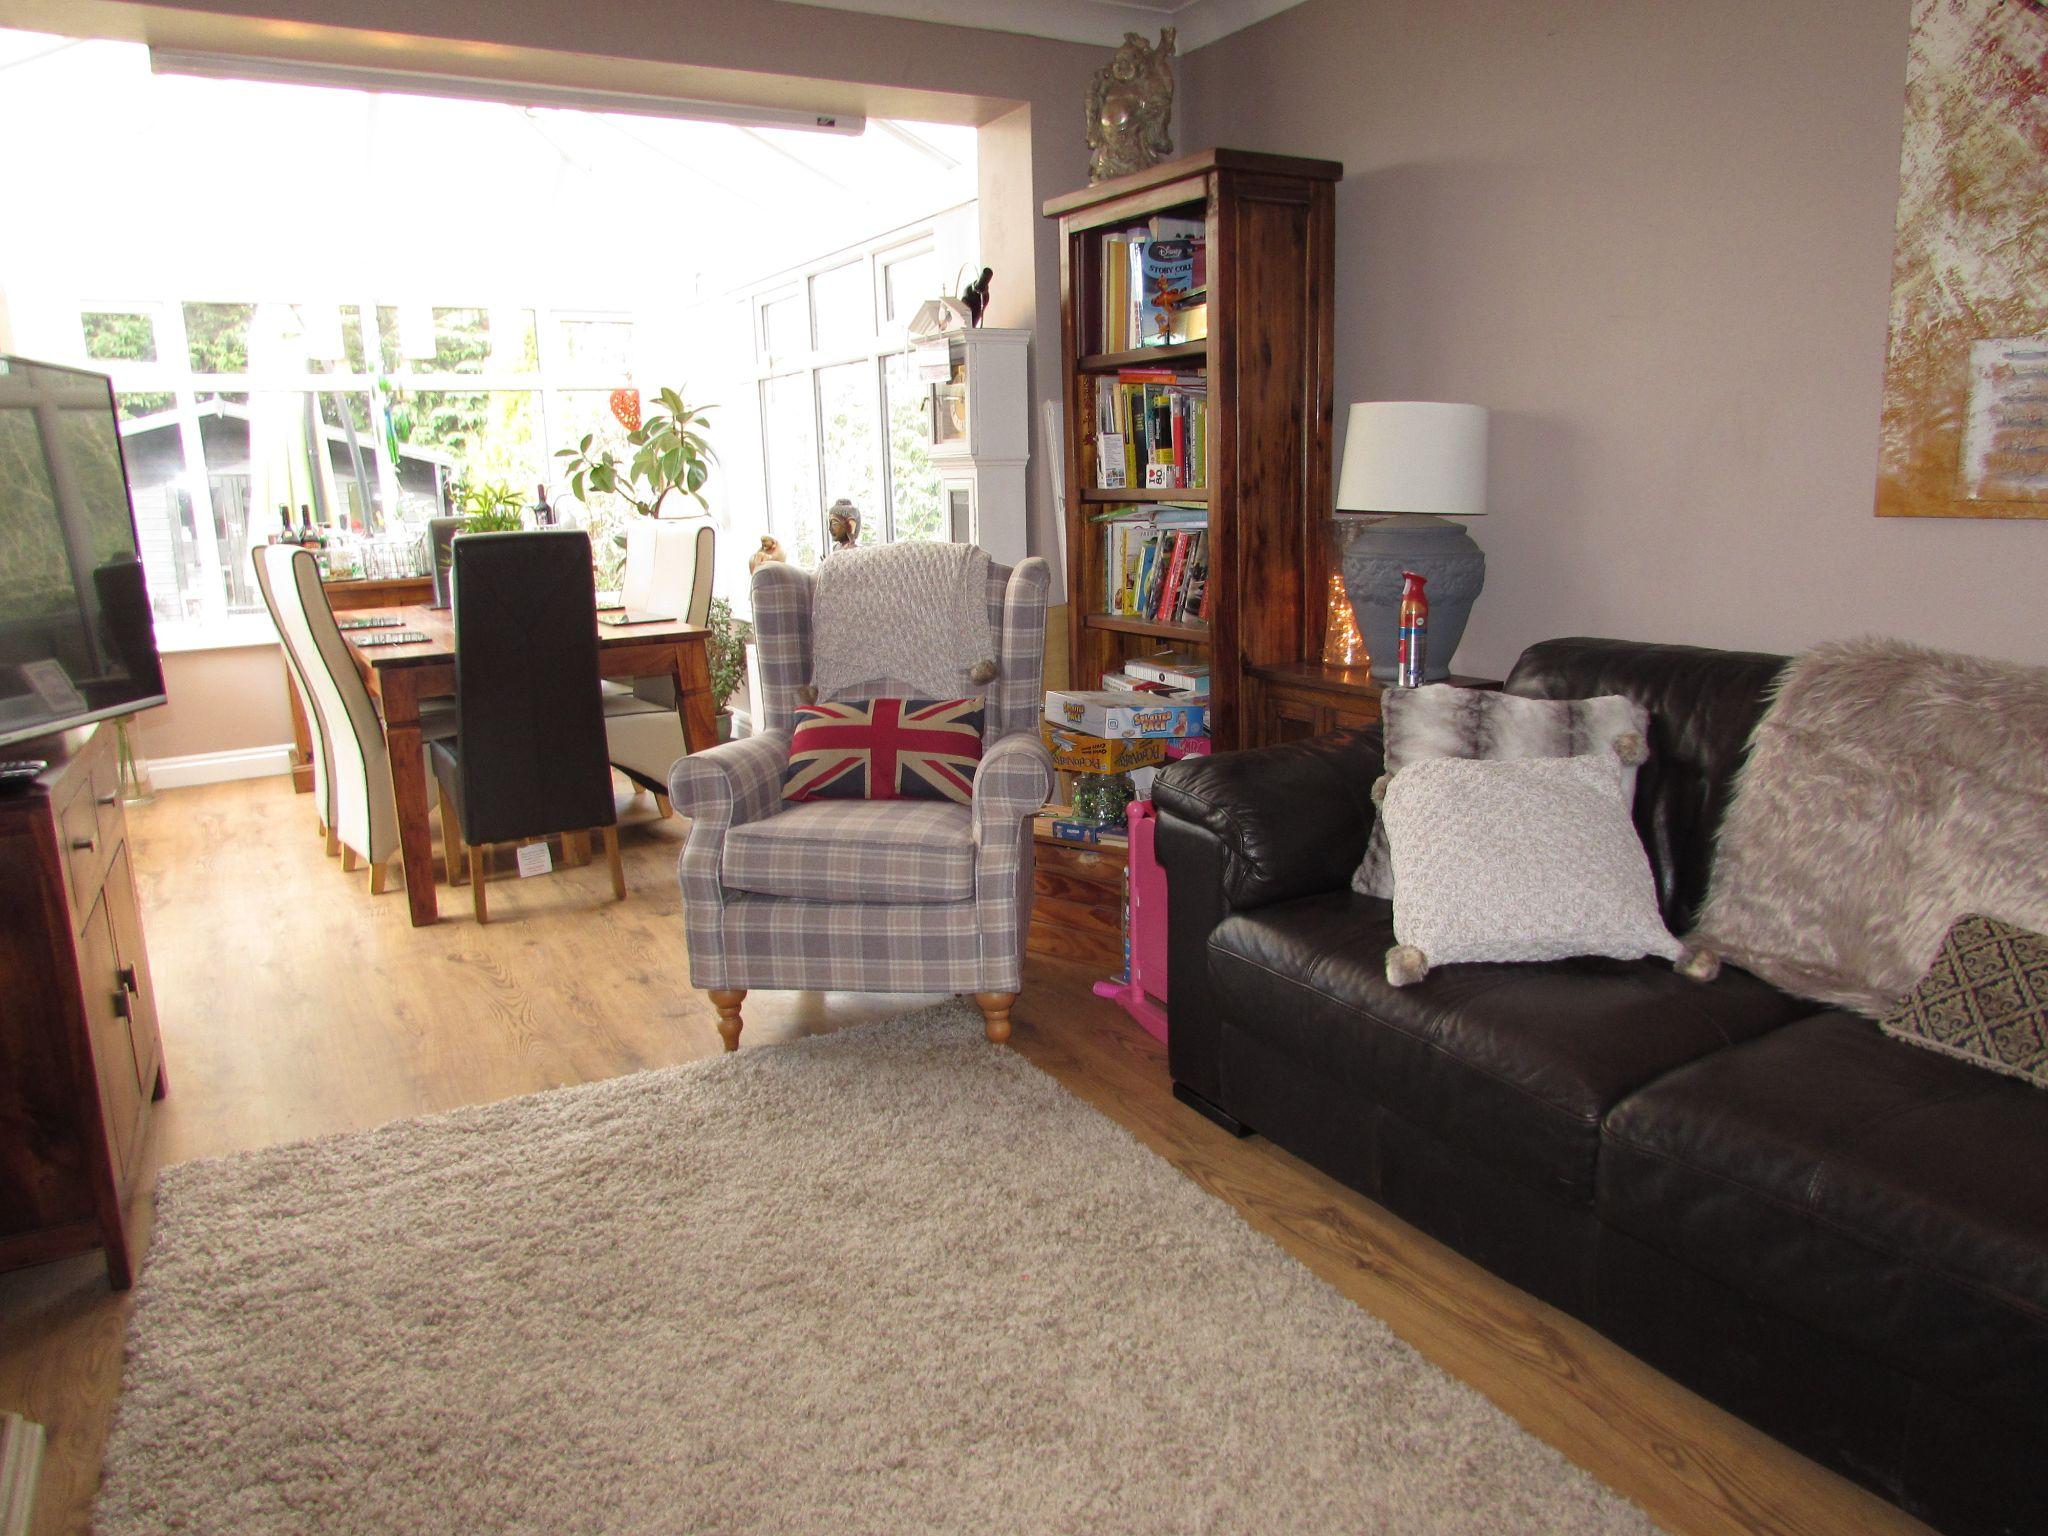 3 Bedroom Semi-detached House For Sale - Rear Lounge into Conservatory